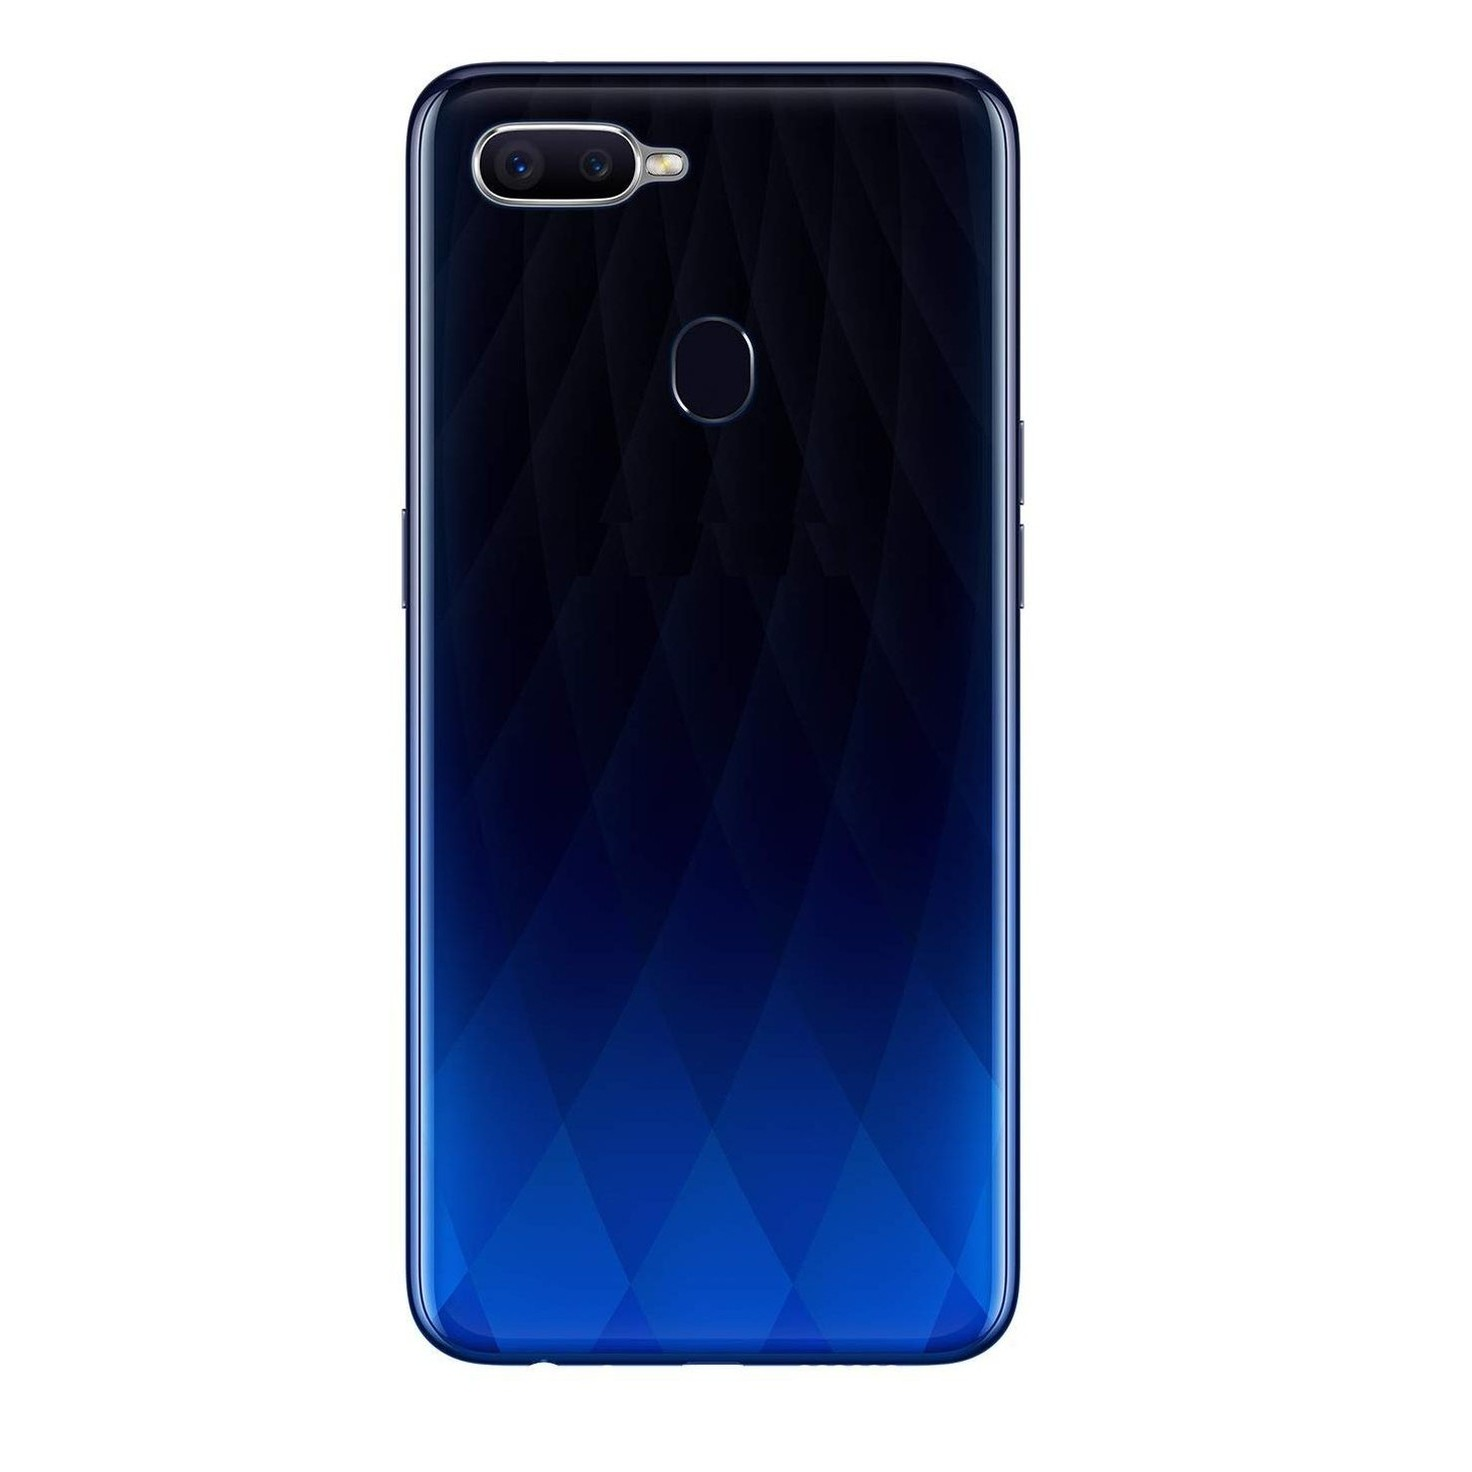 Oppo F9/F9 Pro Compatible Full Body Replacement Housing - Blue